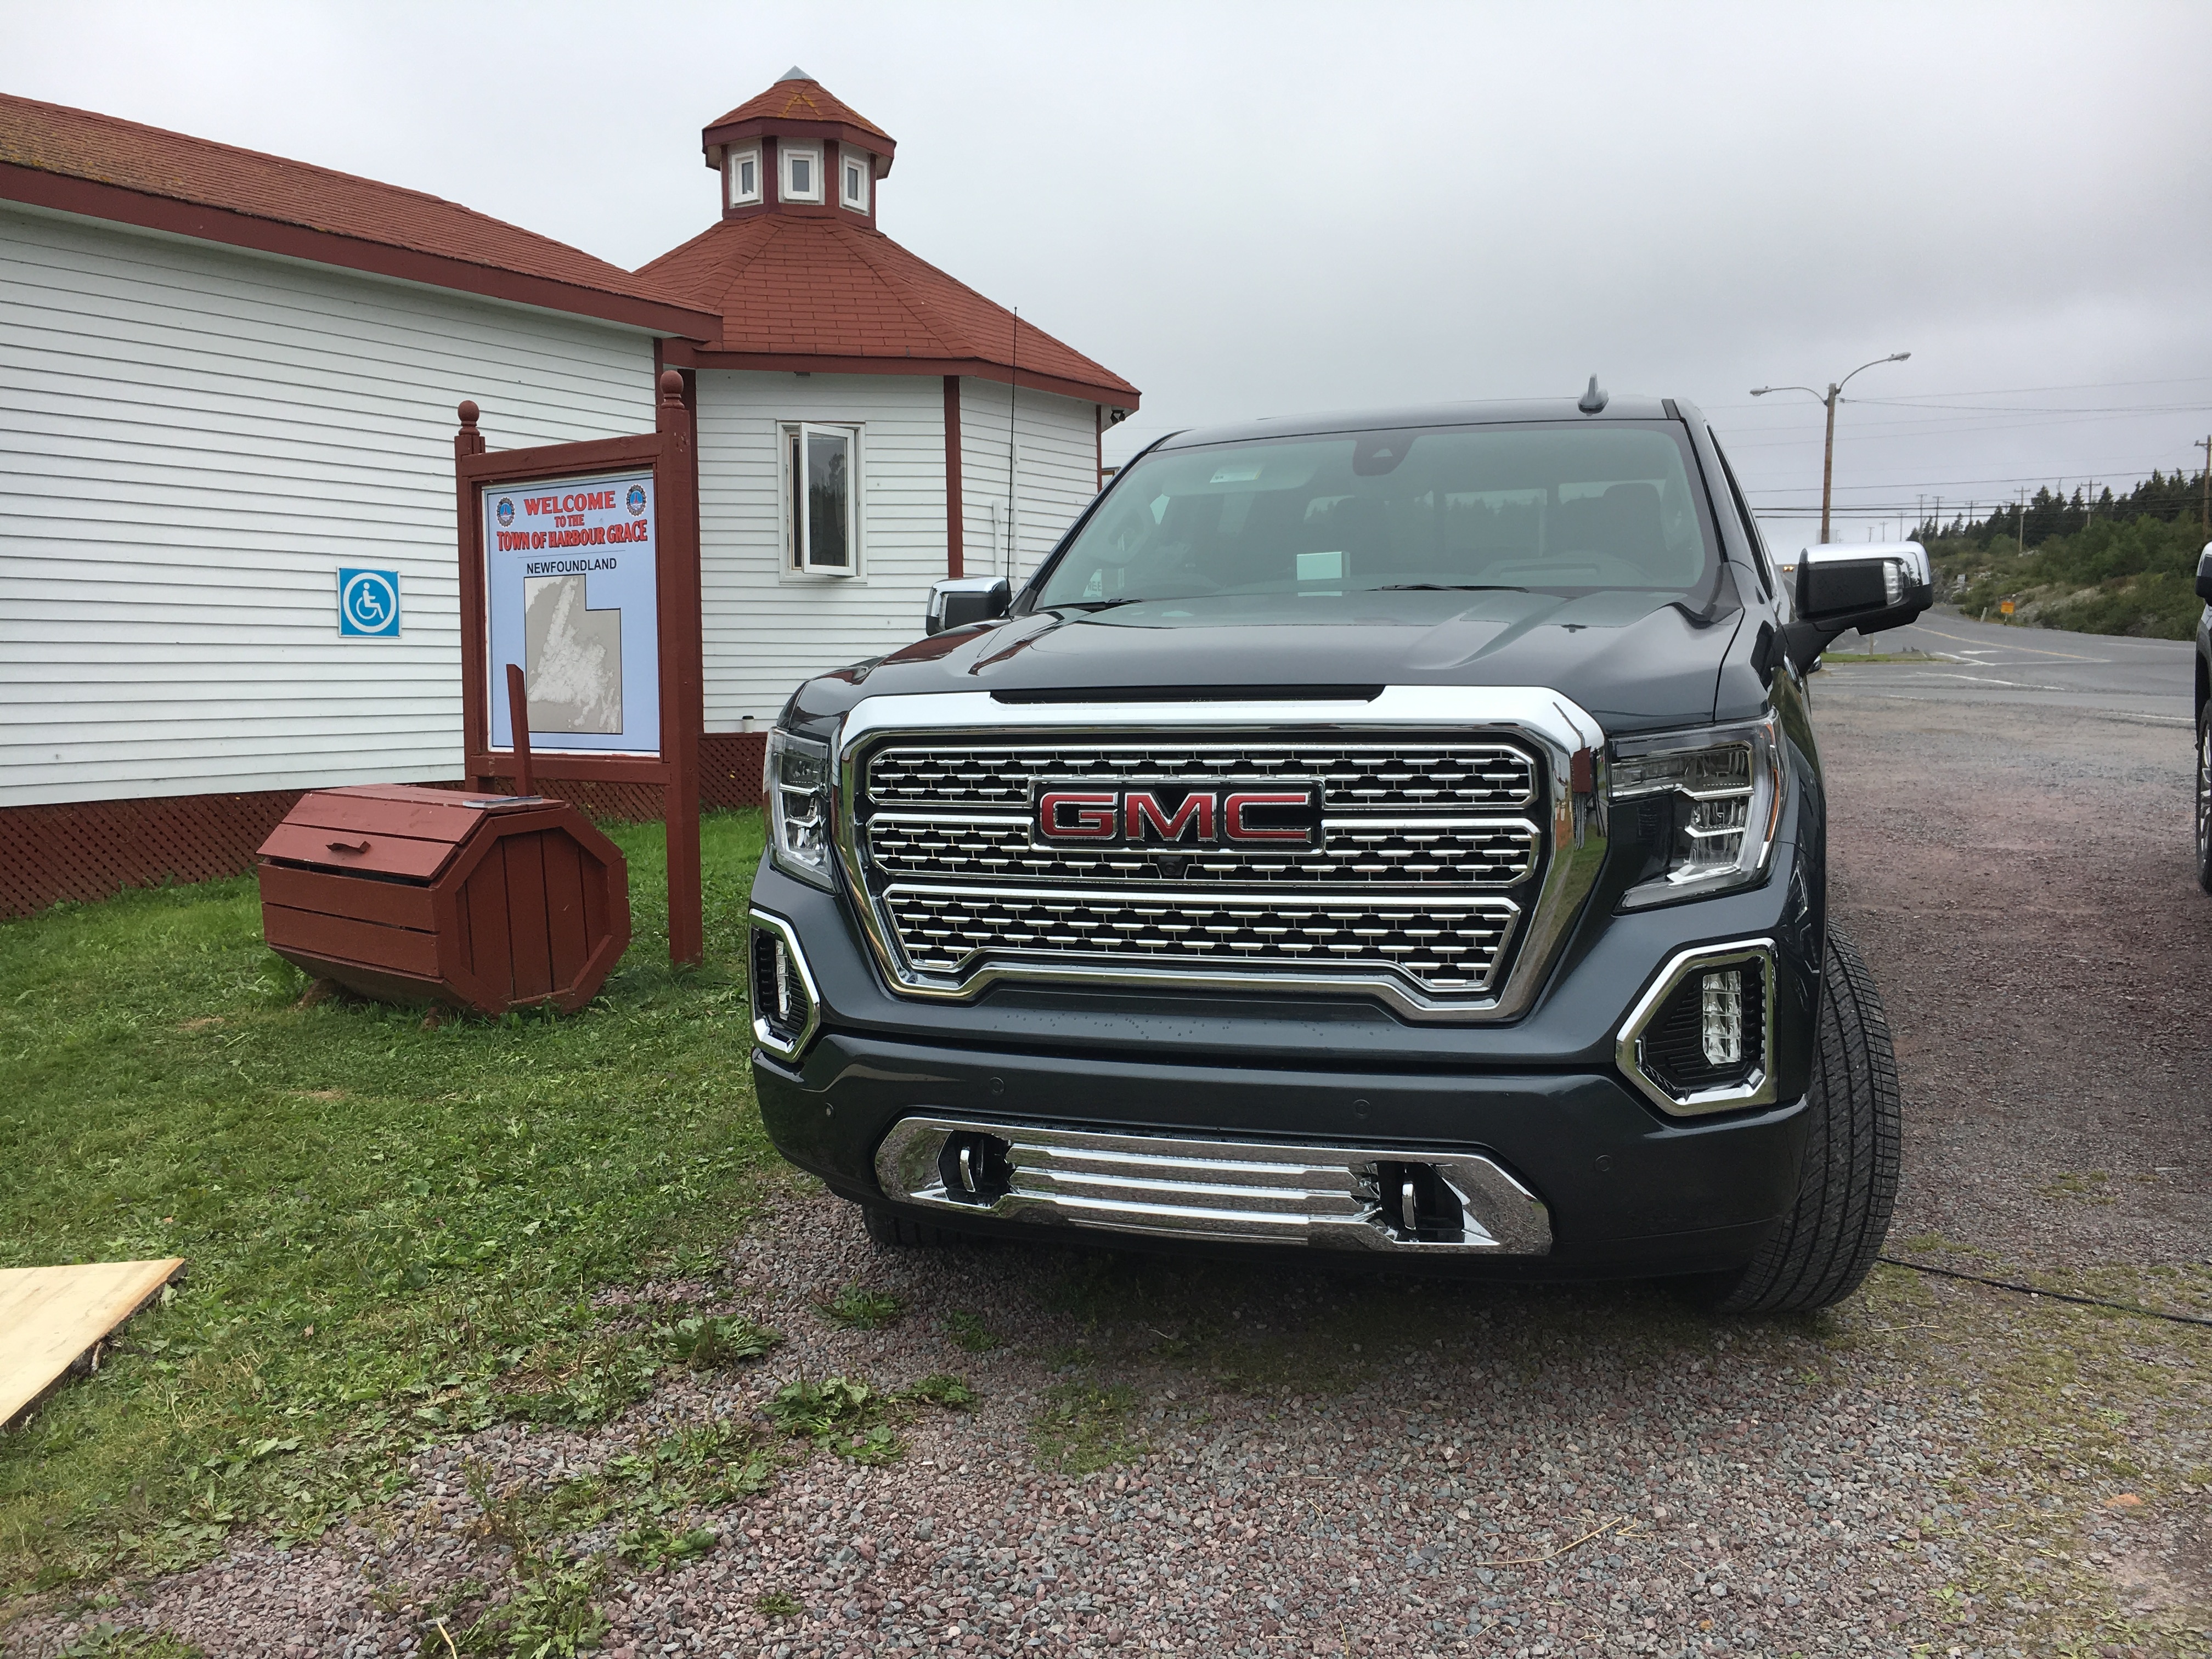 2019 GMC Sierra First Drive Review: GM's New Truck in Expensive